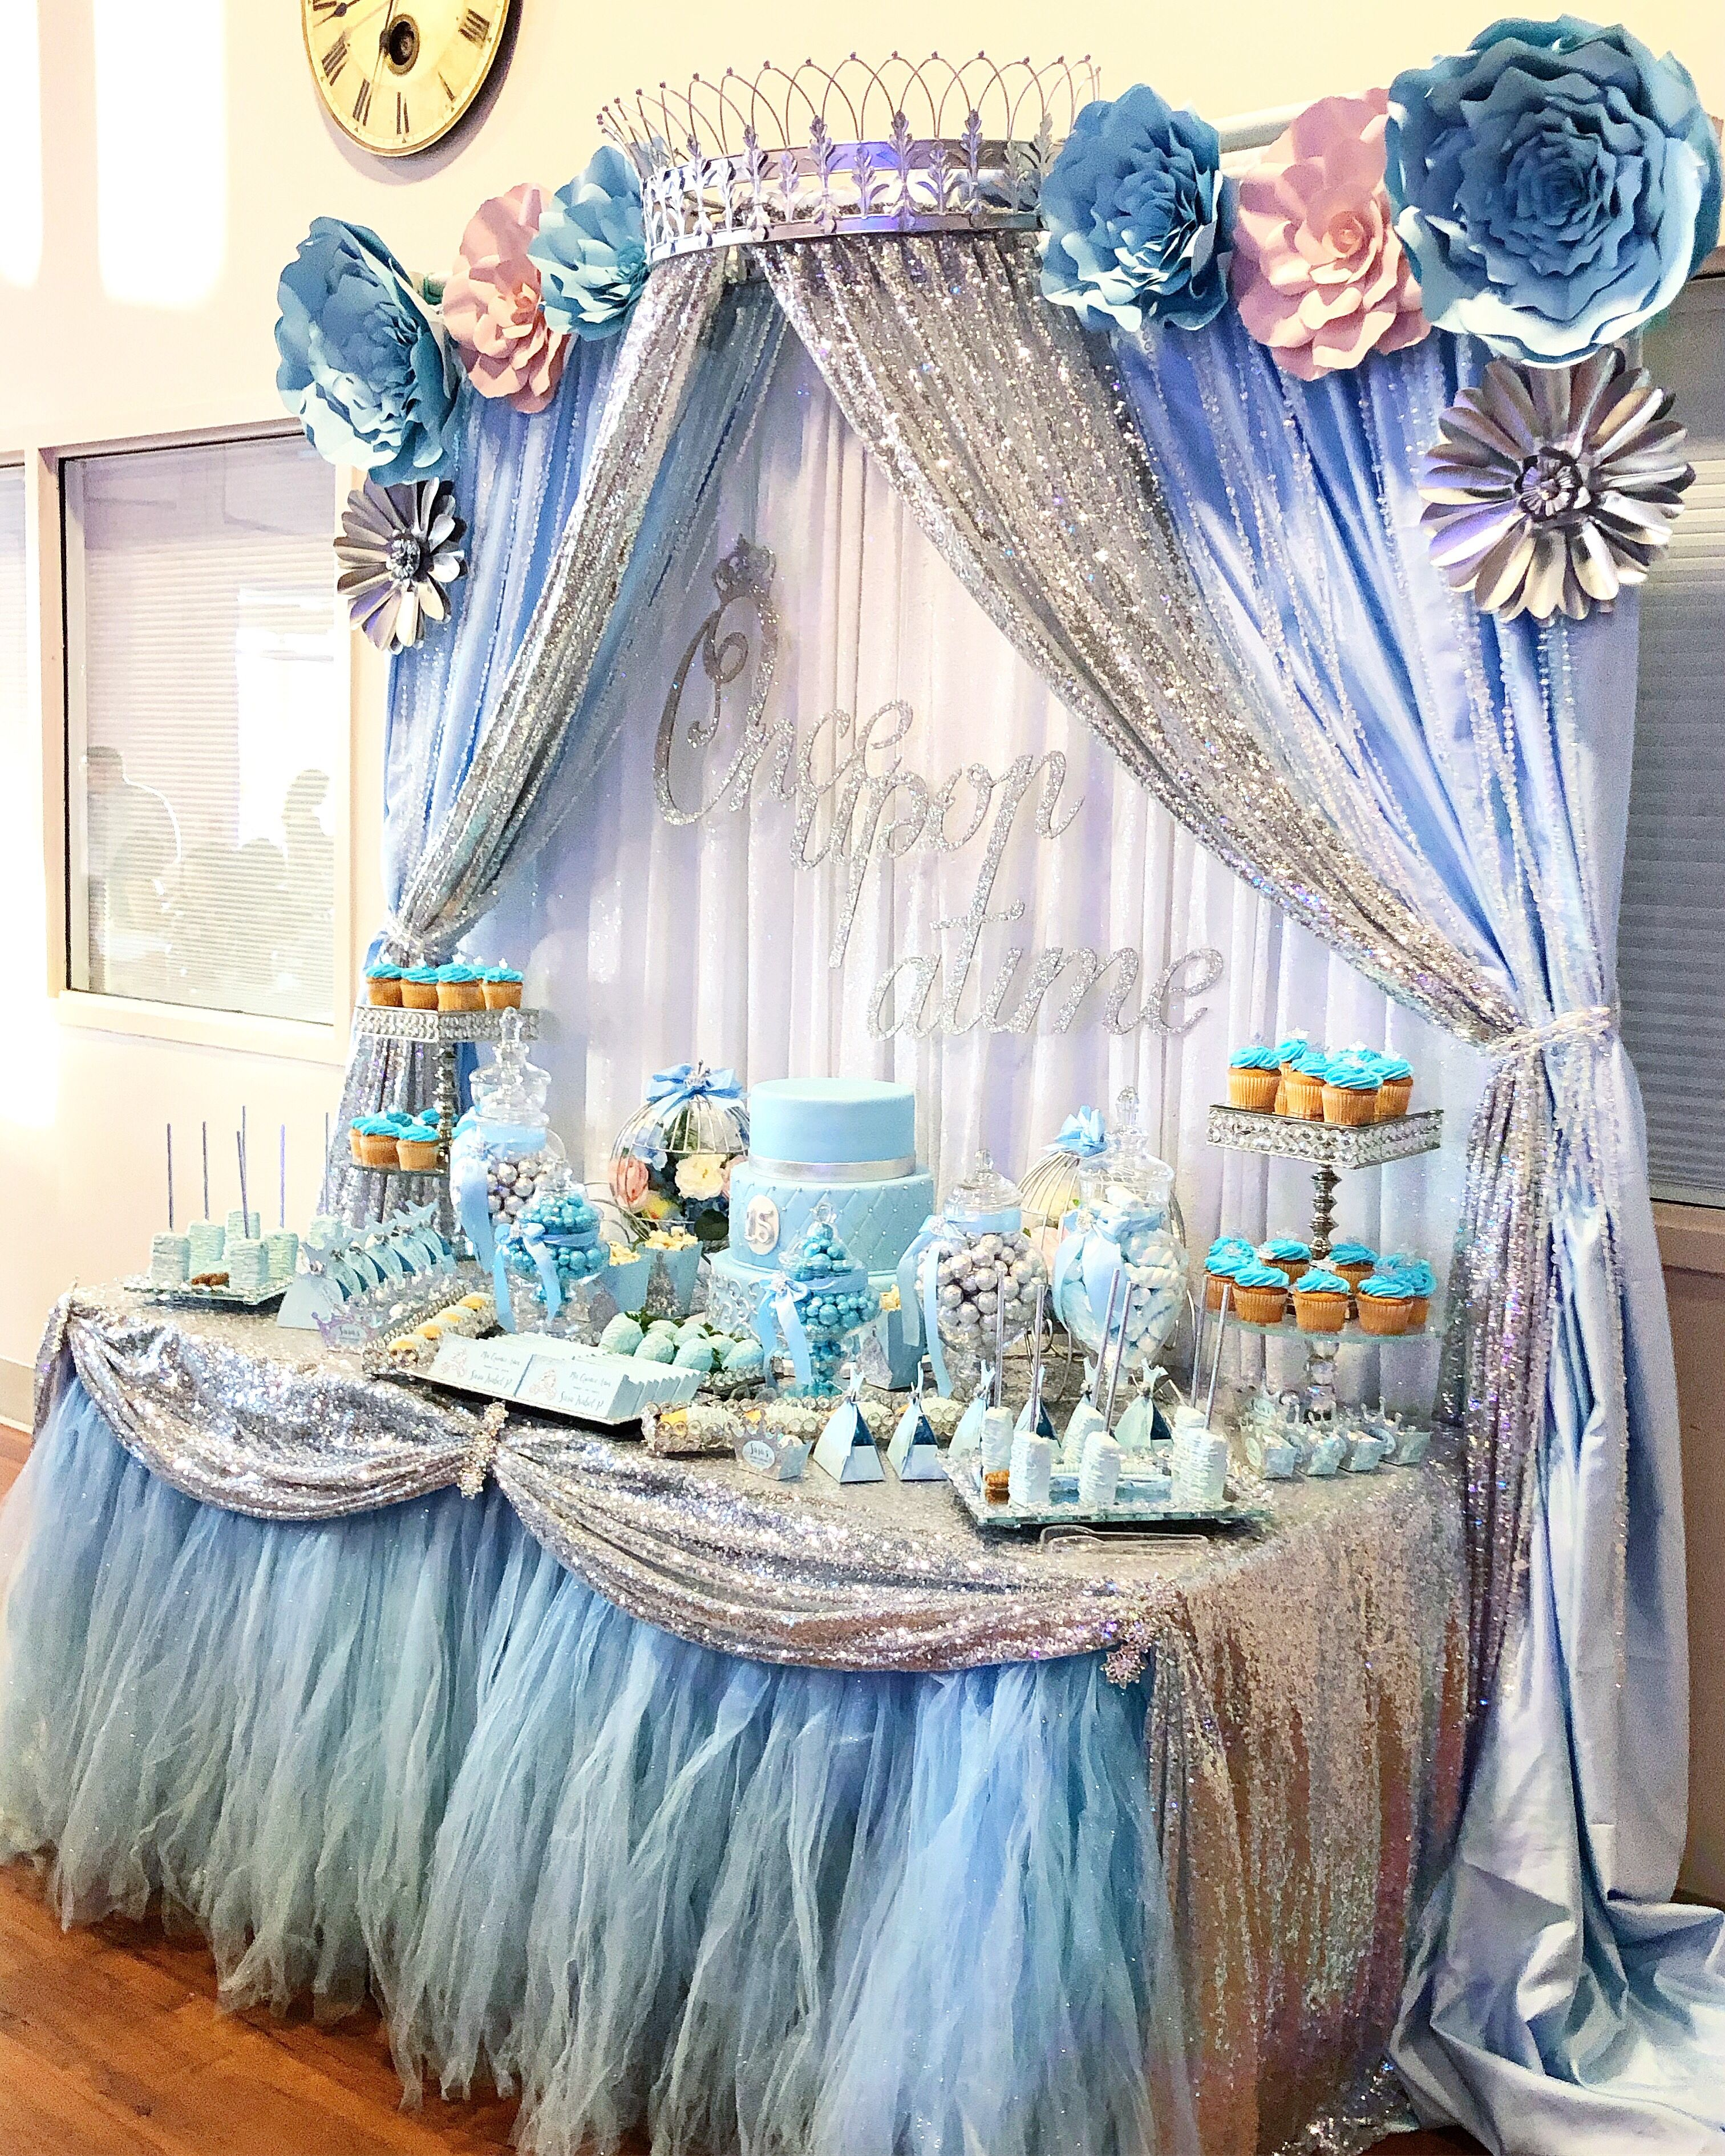 Pin By Creations By Martha On Cinderella Quinceanera Cinderella Quinceanera Themes Cinderella Birthday Party Cinderella Birthday Party Centerpieces